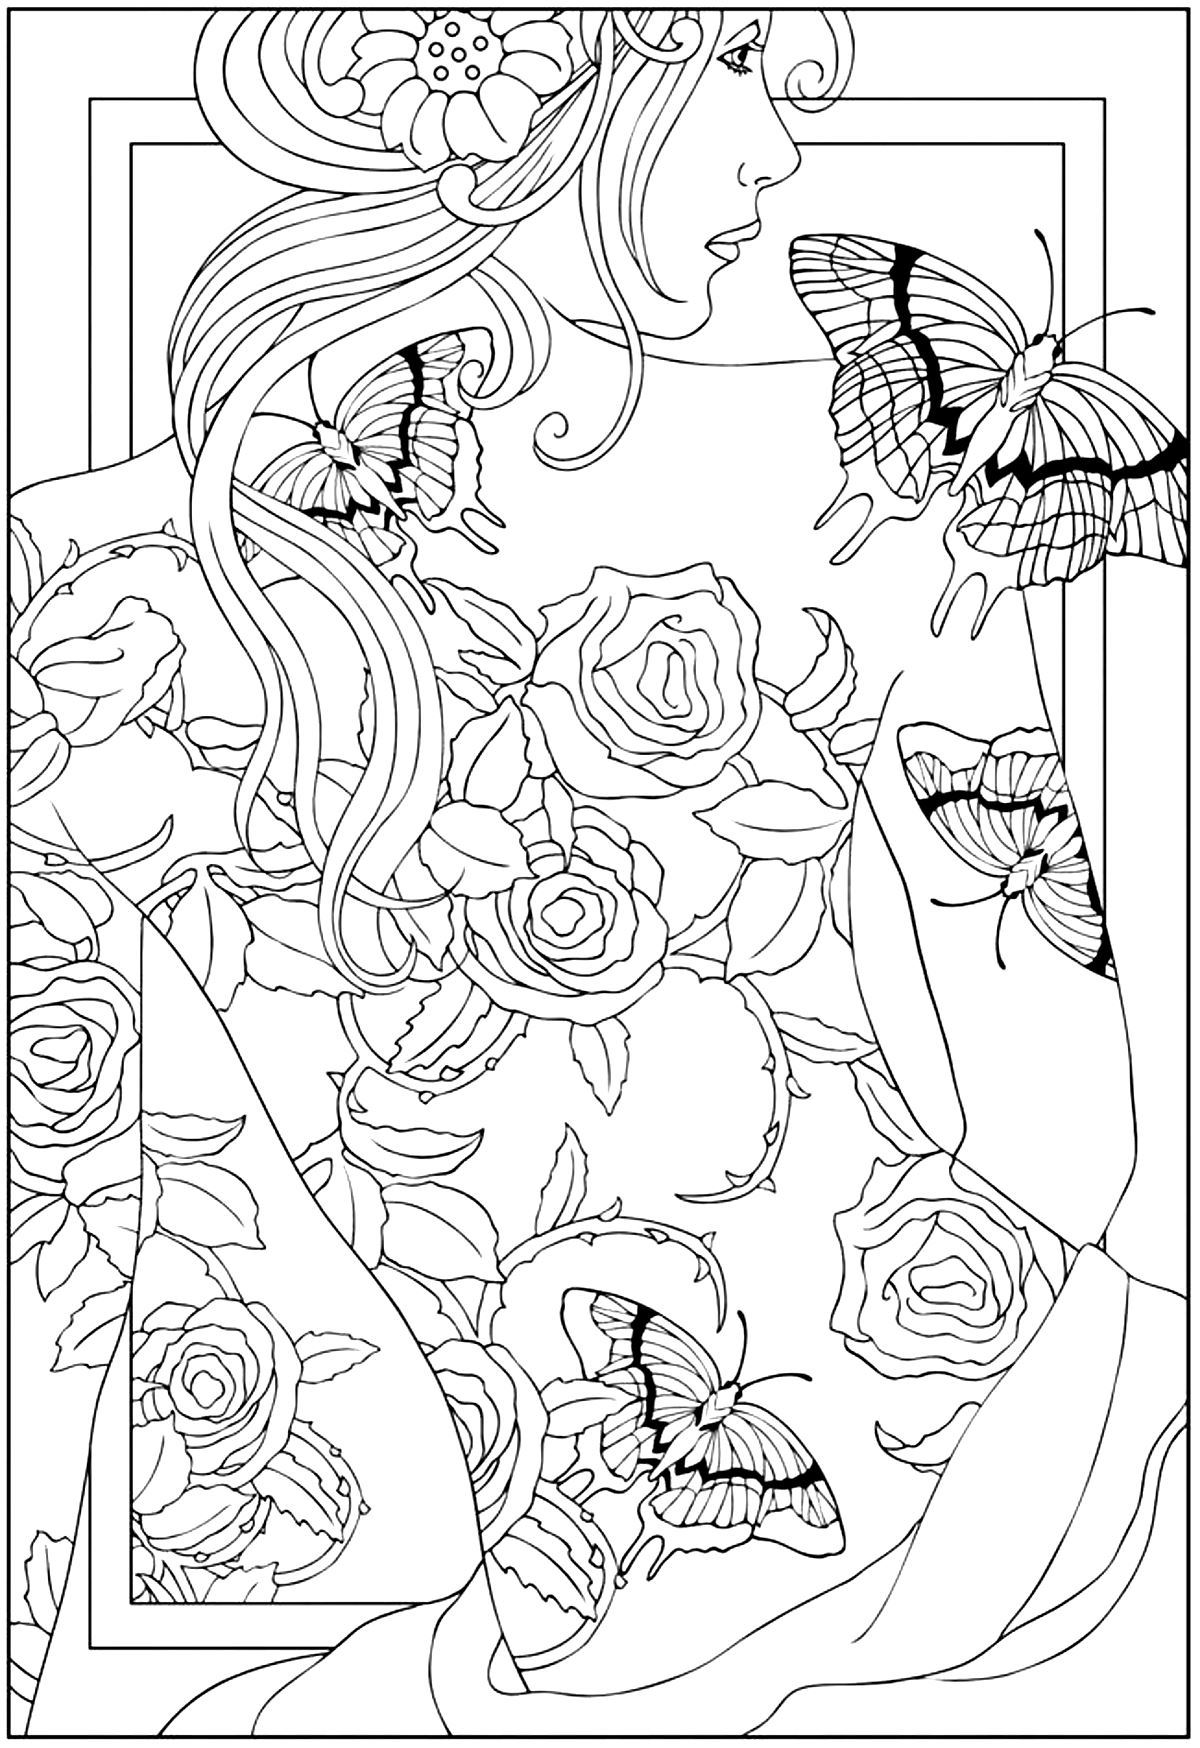 Coloring Pages Tattoos Coloring Pages tattoos coloring pages eassume com for adults adult back tattooed